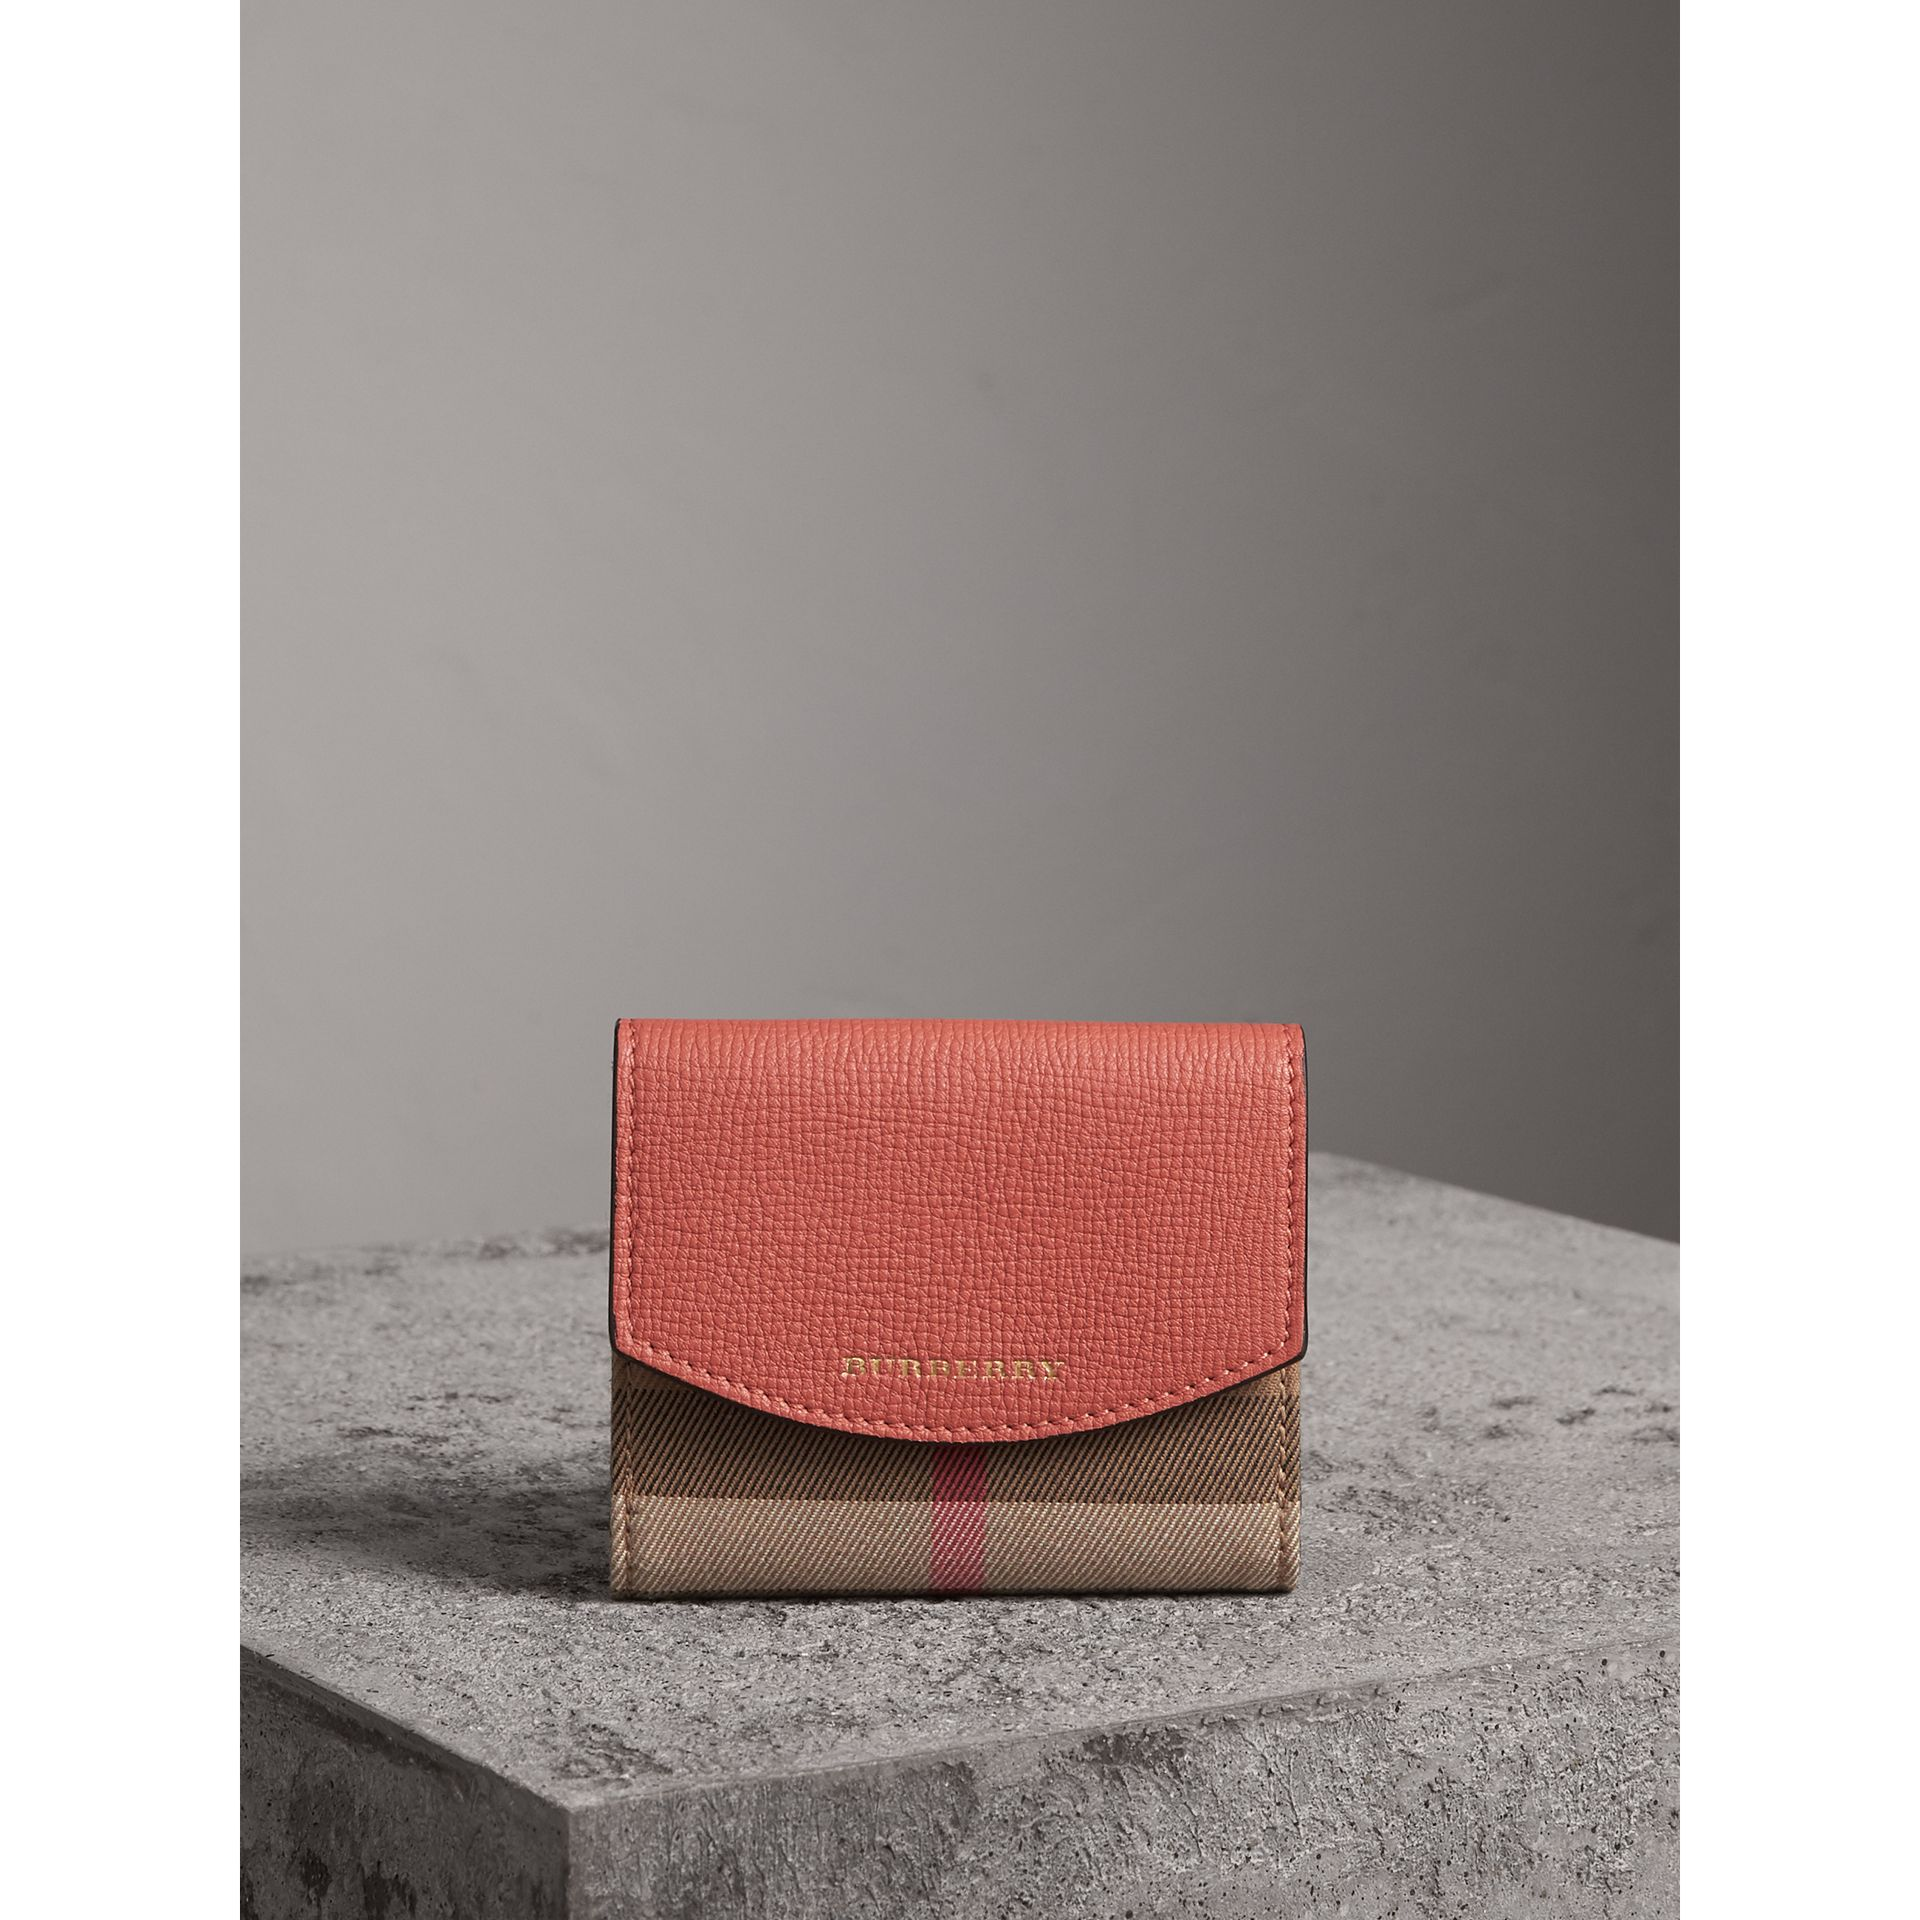 House Check and Leather Wallet in Cinnamon Red - Women | Burberry Canada - gallery image 4